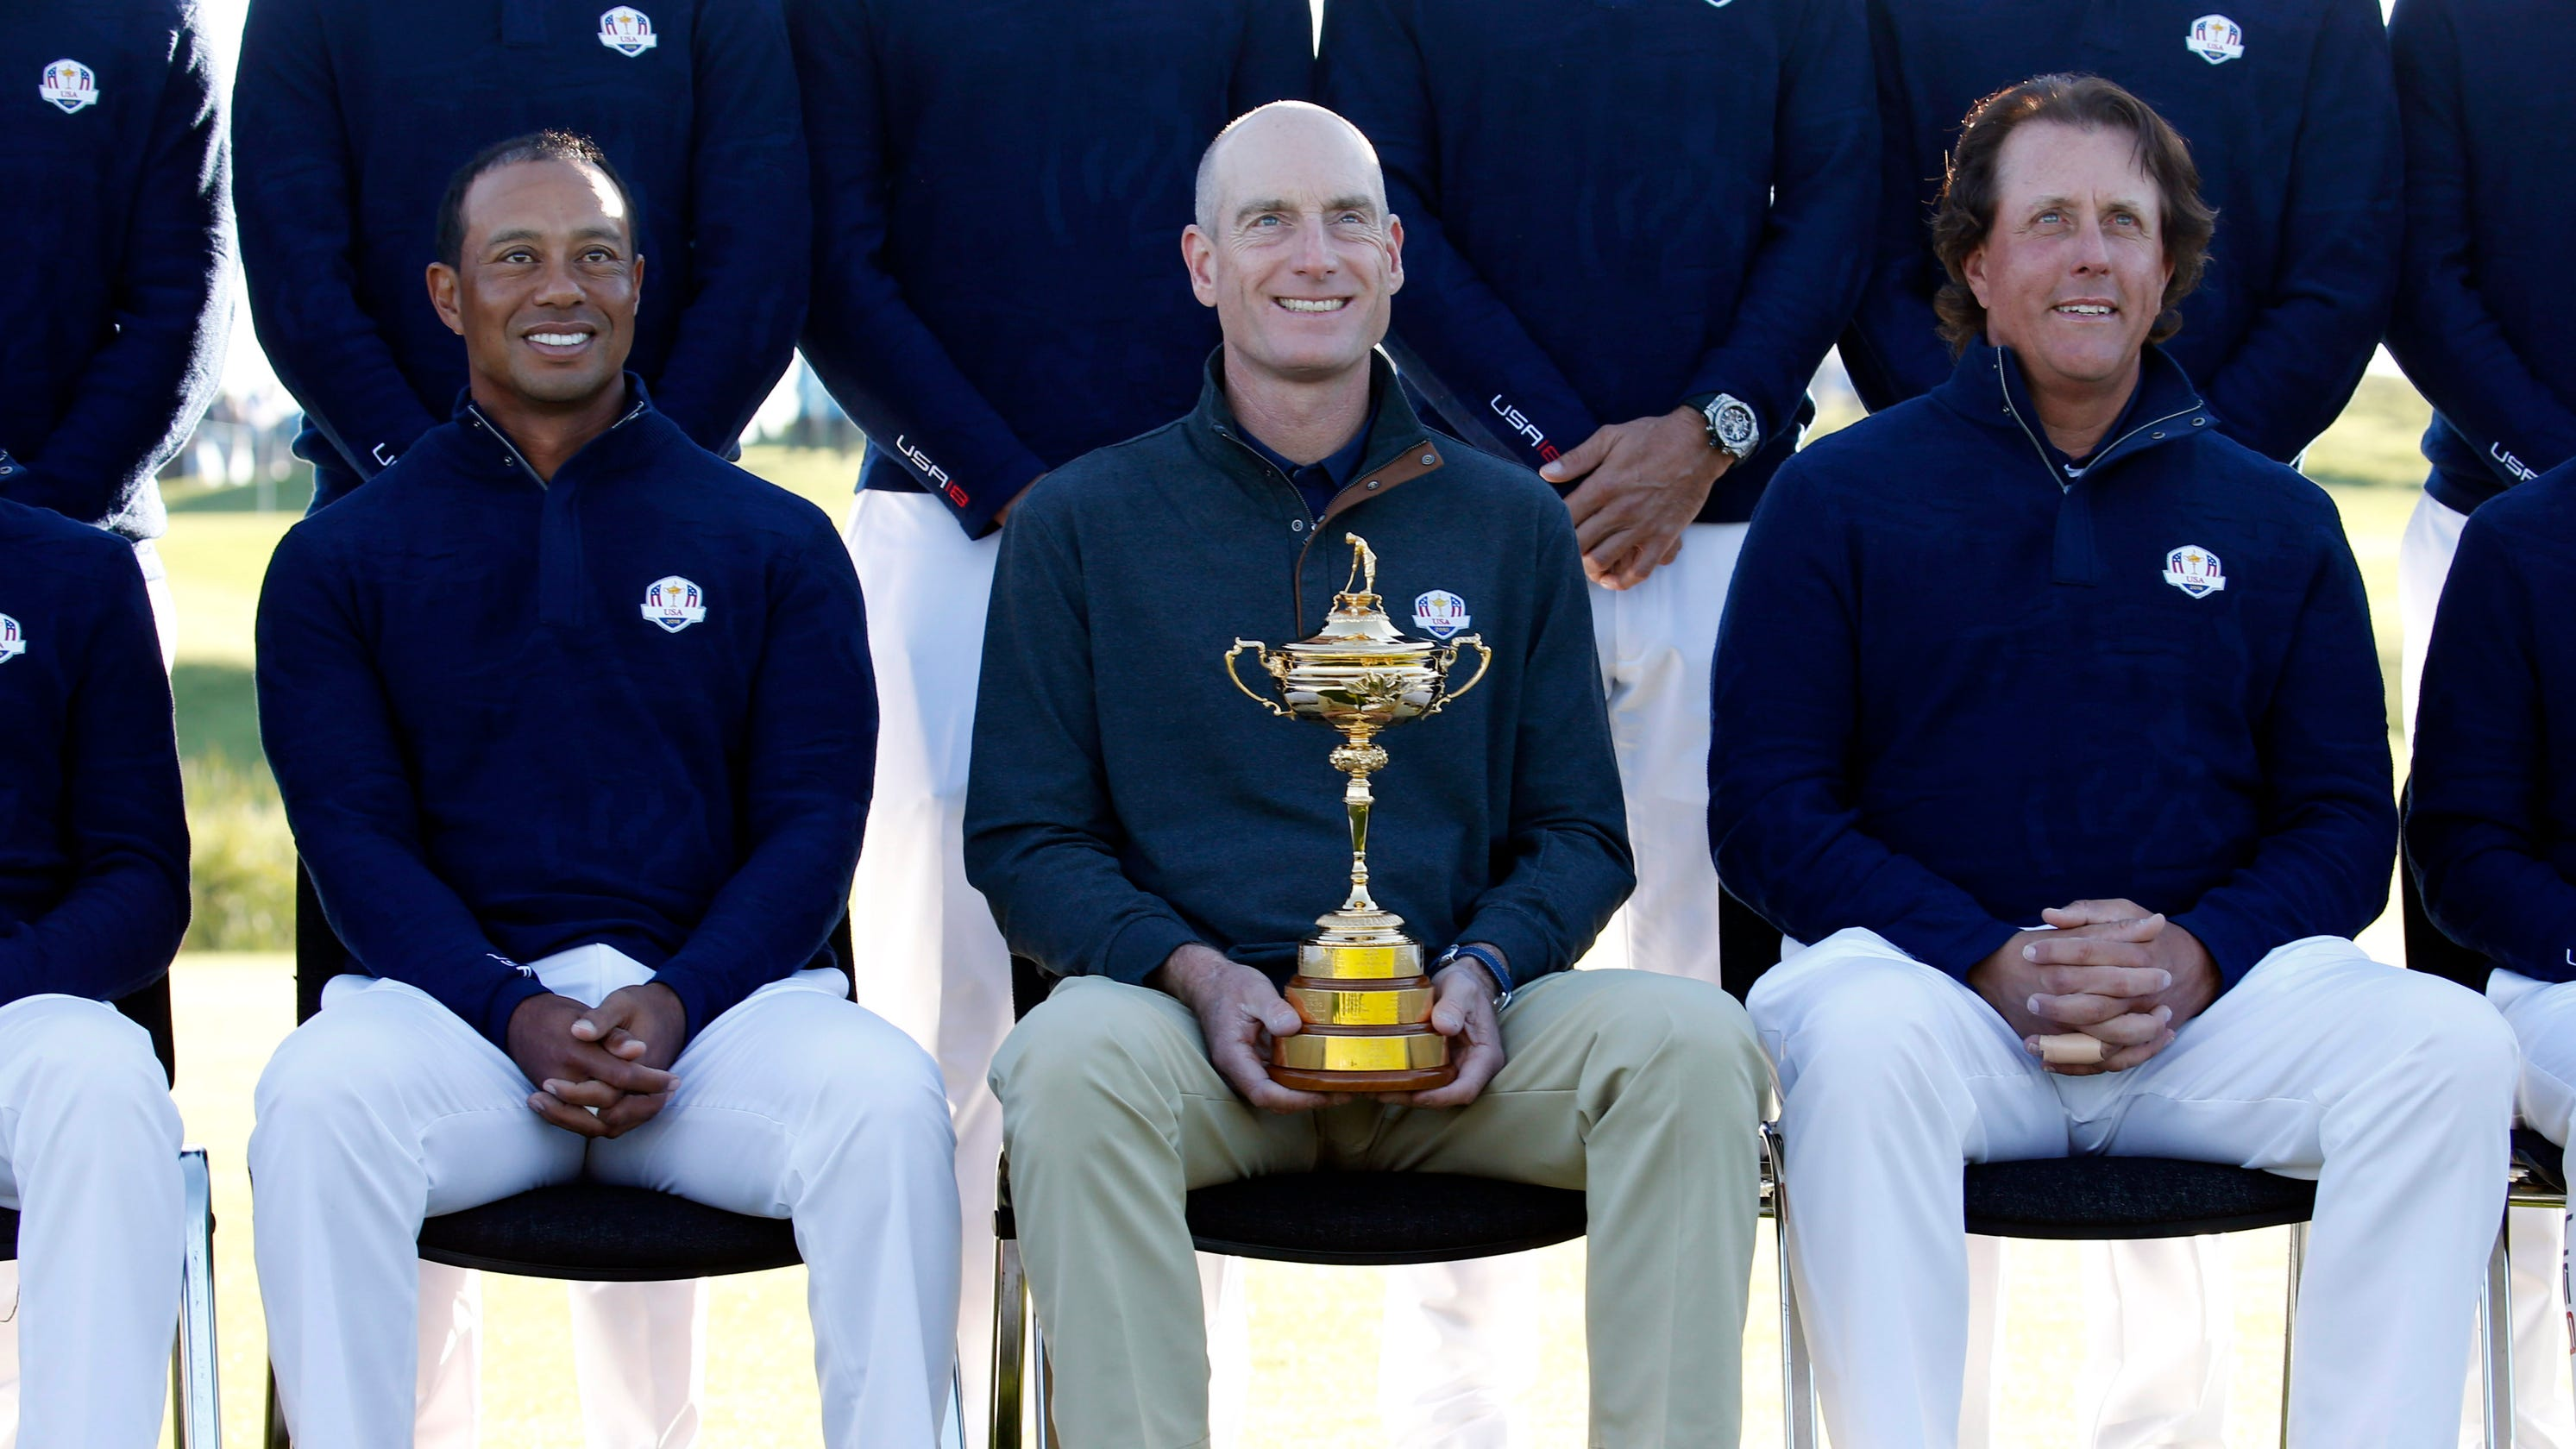 6a65955d0d1ea Ryder Cup  USA will win behind firepower